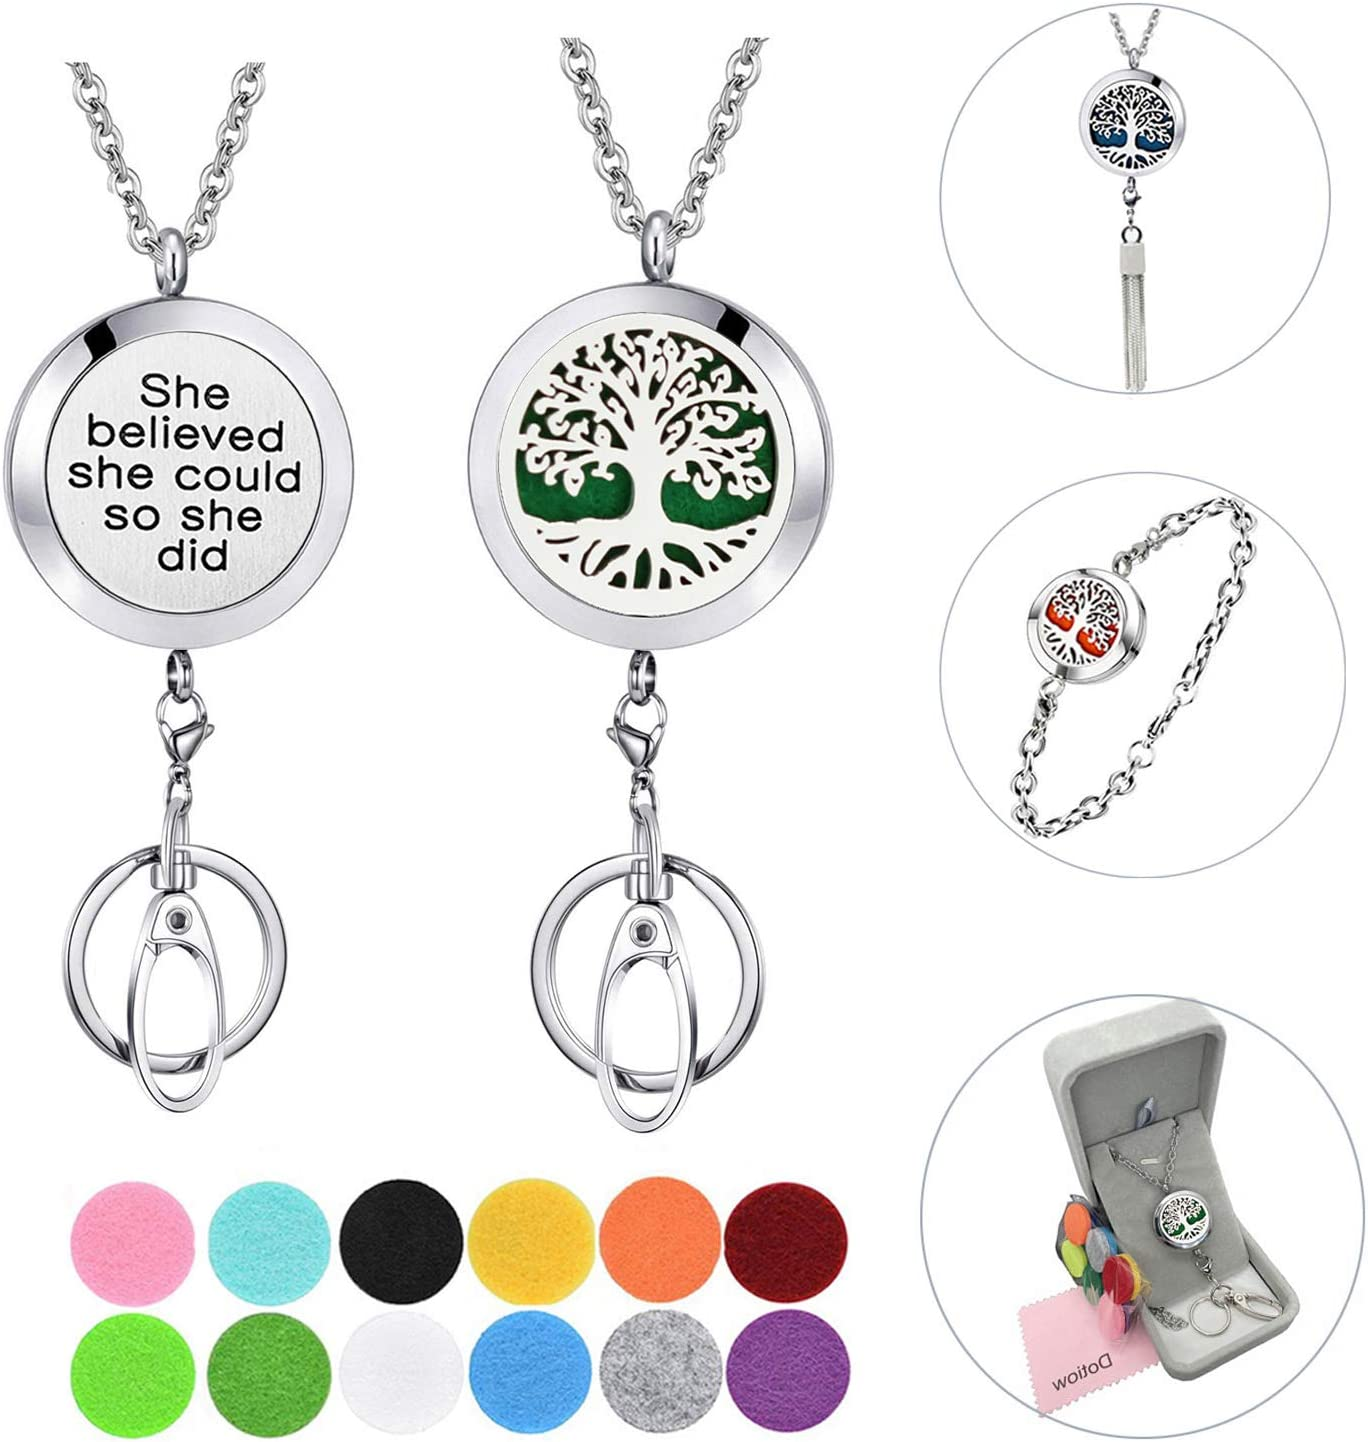 Dotiow 3 in 1 Diffuser Lanyard Bracelet Necklace SEAL limited Miami Mall product ID Clip Holder